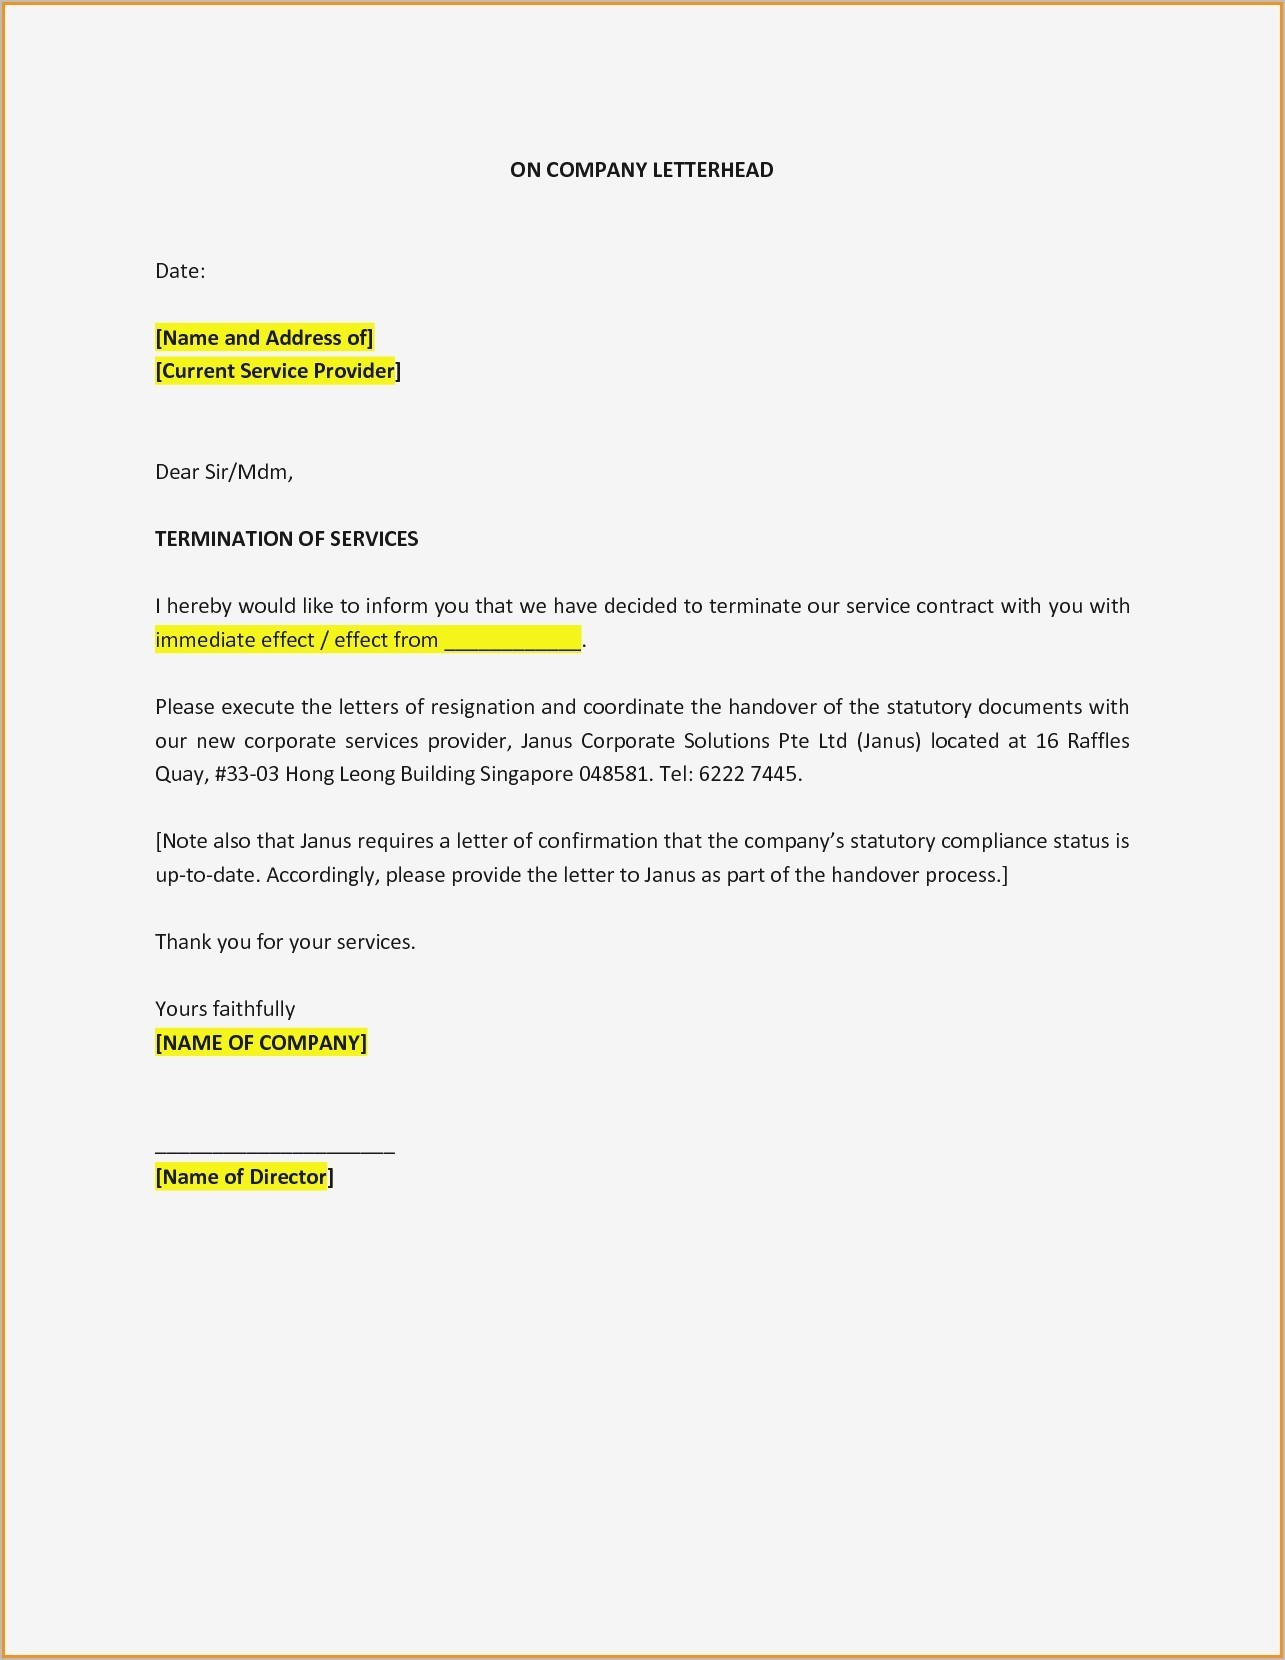 Termination Service Contract Letter Template